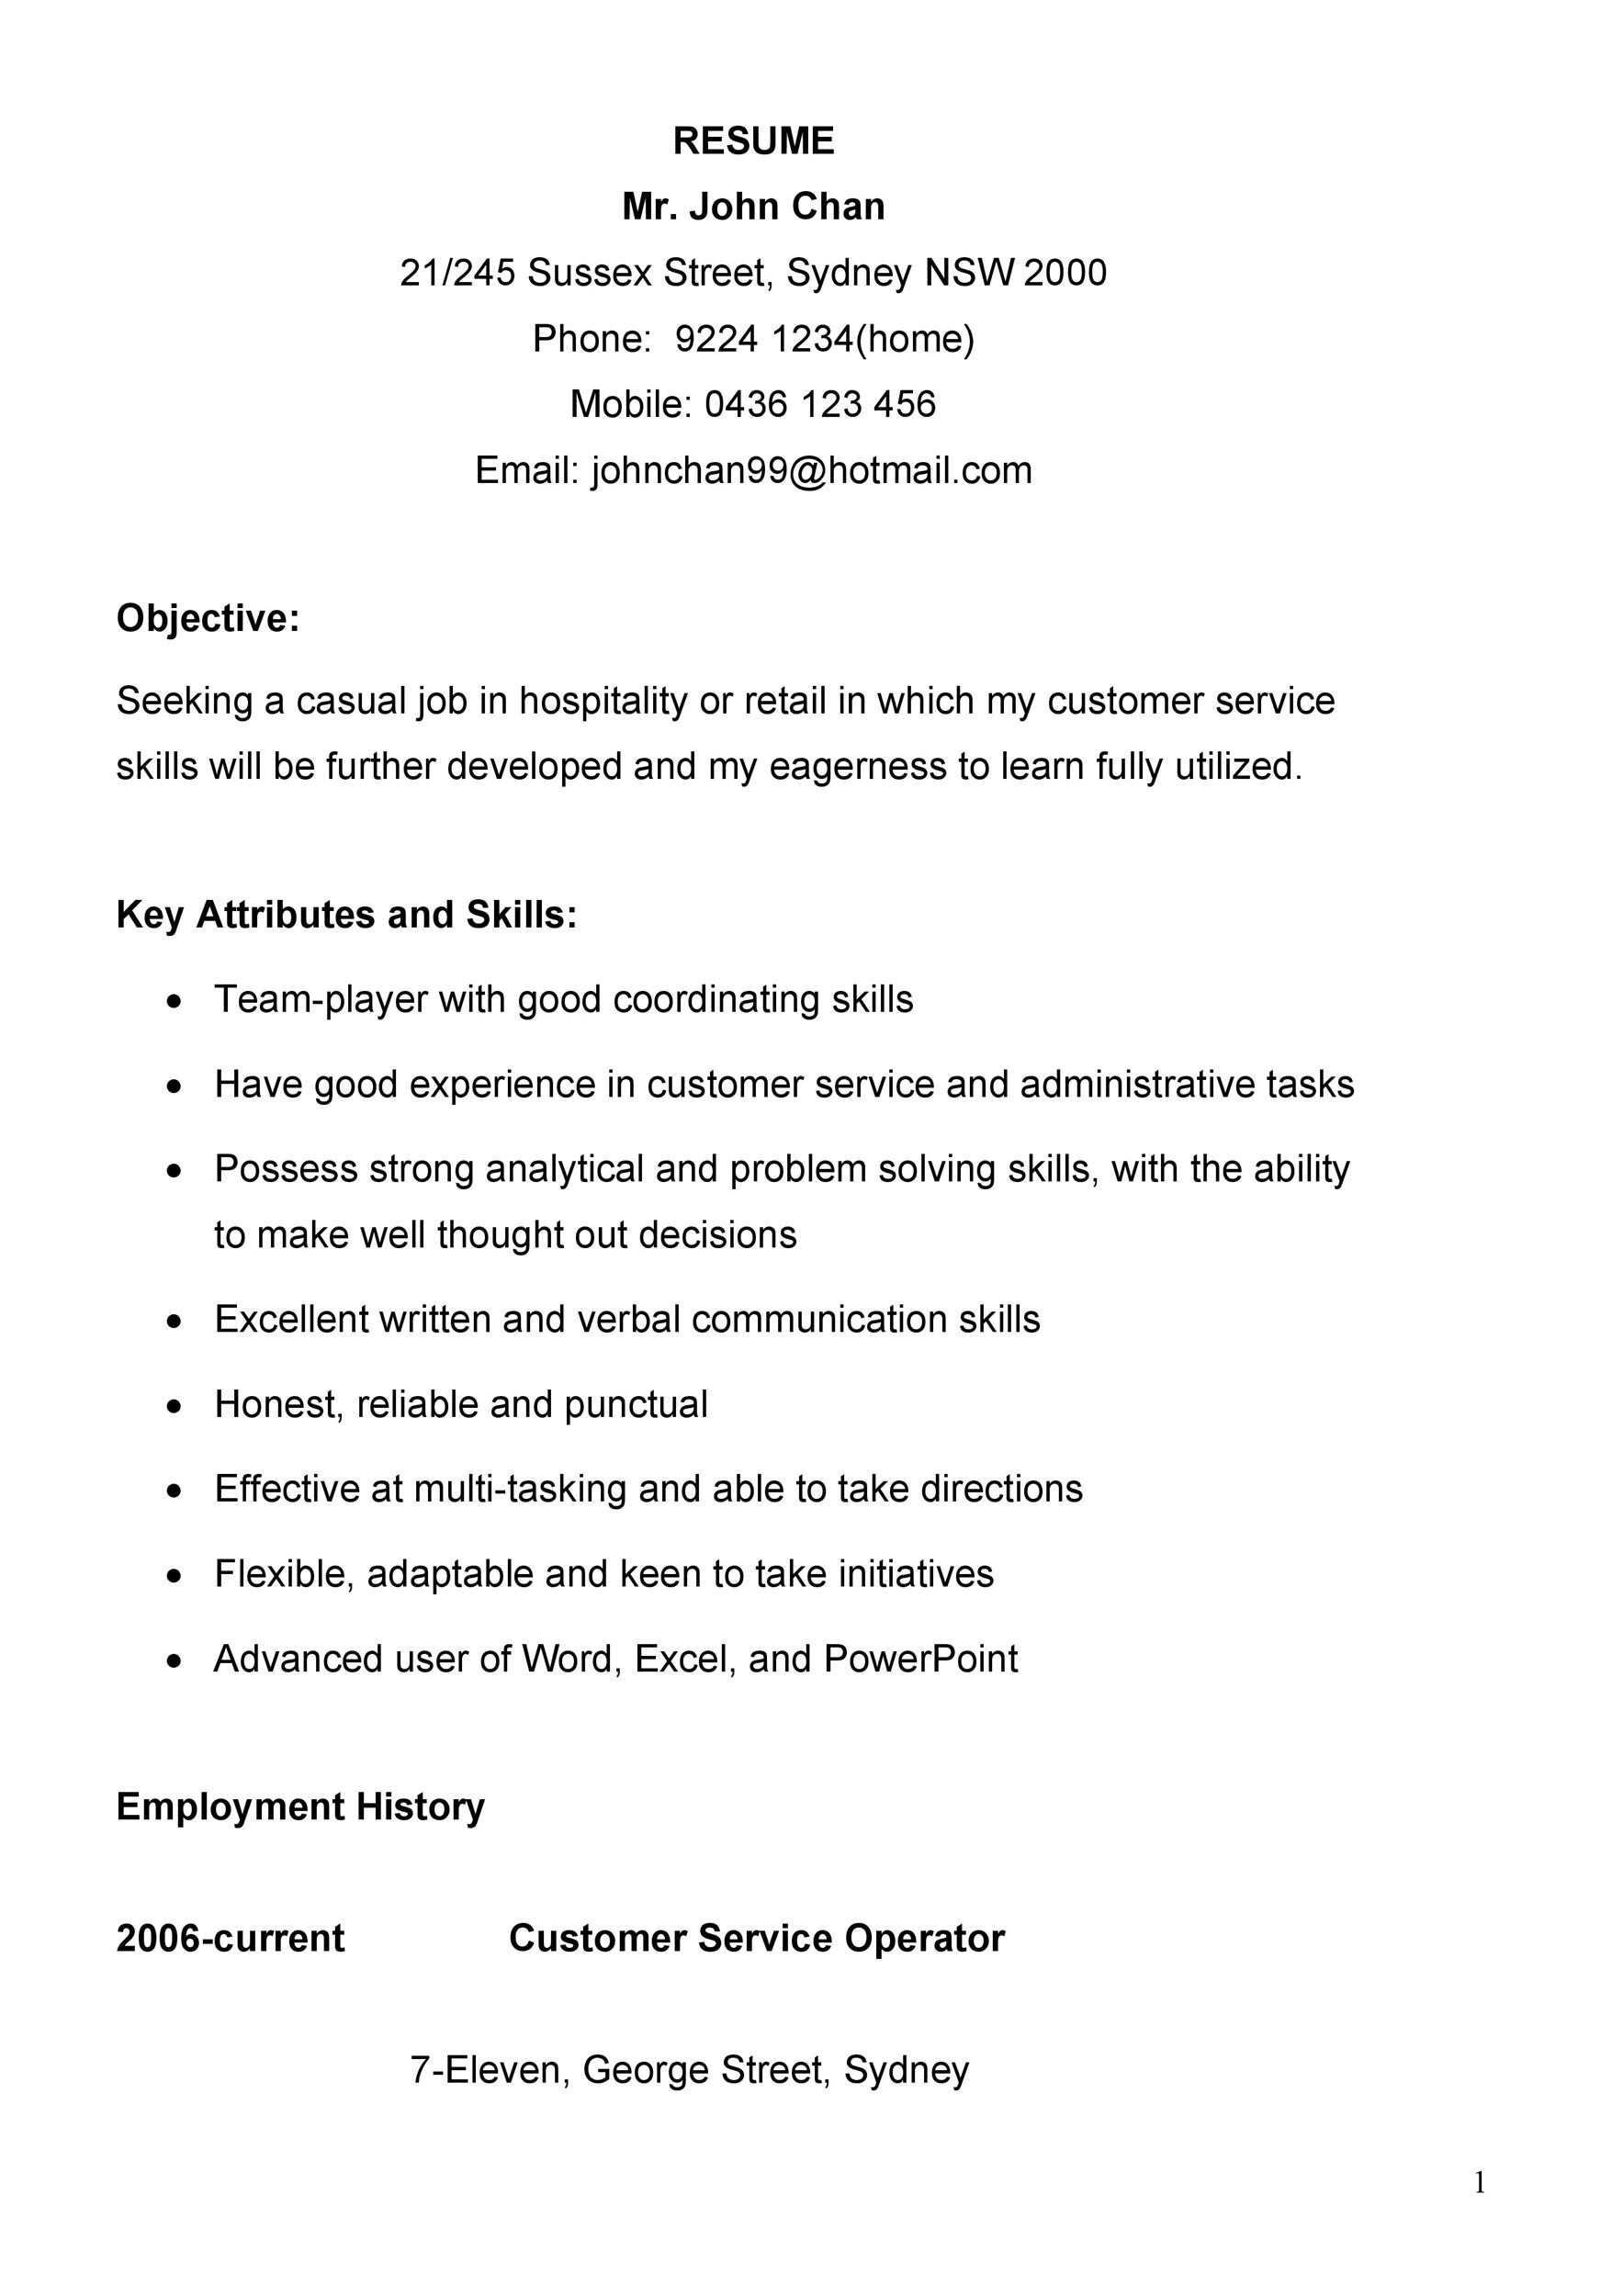 Customer Service Resume Template Microsoft Word .  Customer Service Resume Sample